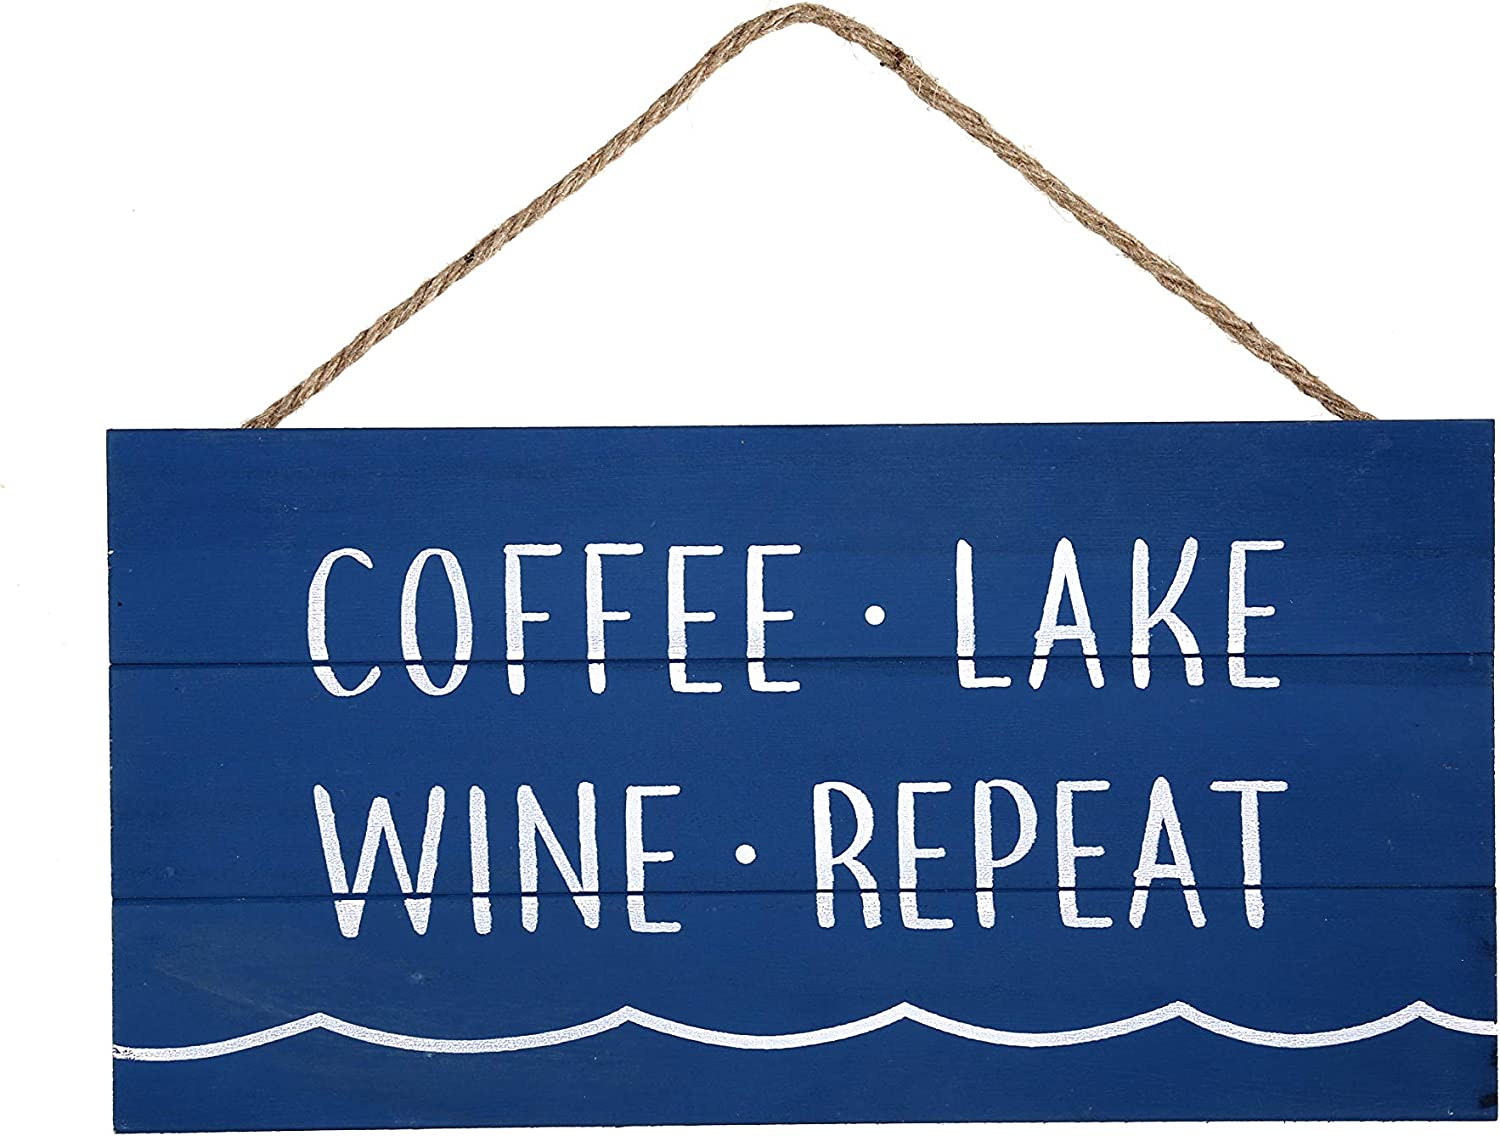 Coffee Lake Wine Repeat Wood Plank Hanging Sign for Home Decor (13.75 x 6.9 Inches with Blue Background)